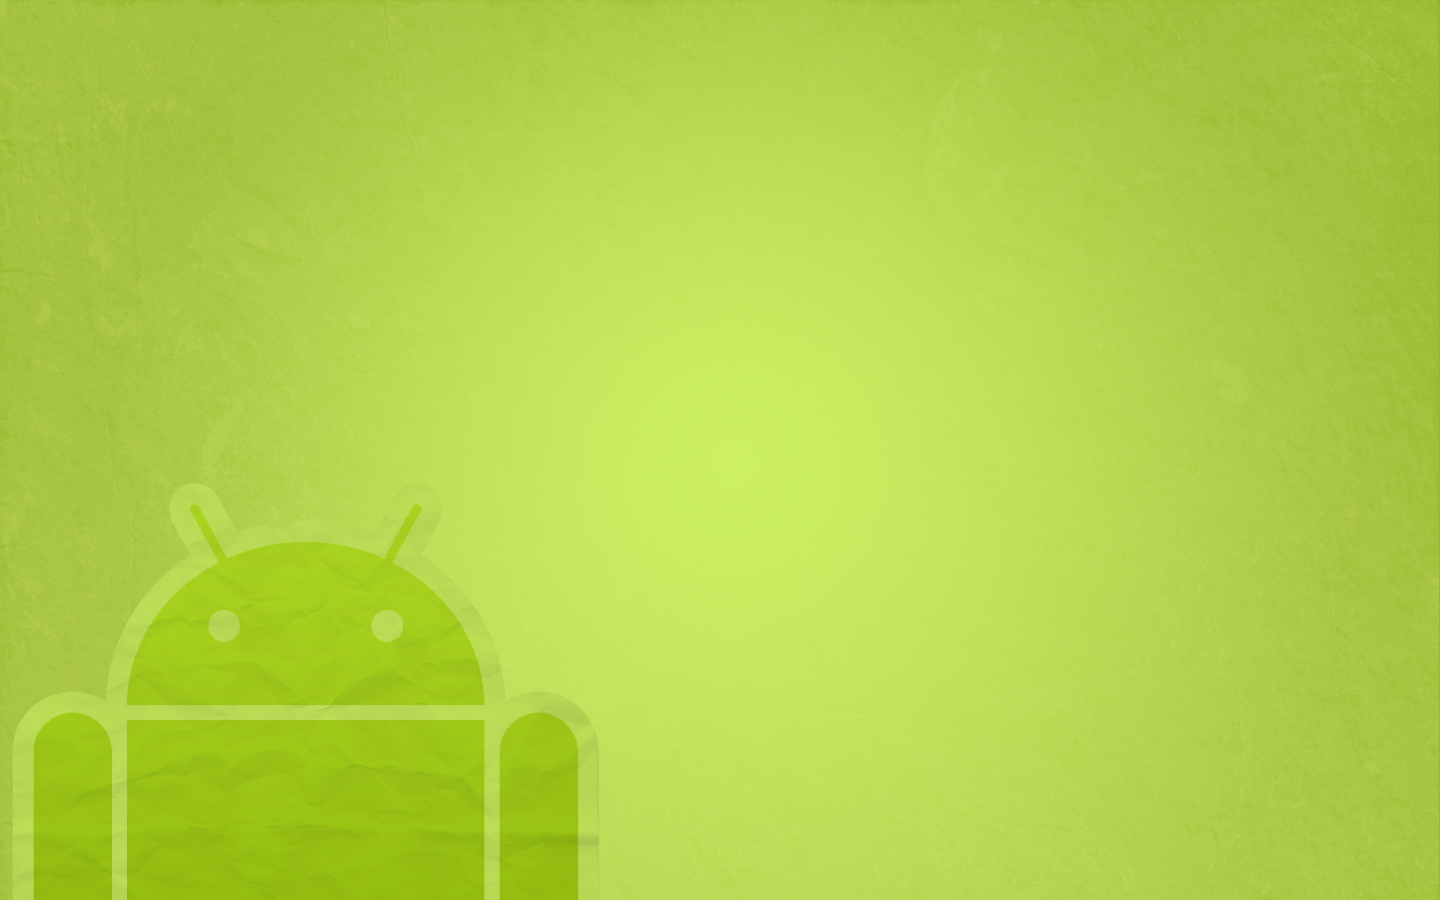 Free Wallpapers Android Themes: Free Android Wallpapers And Themes